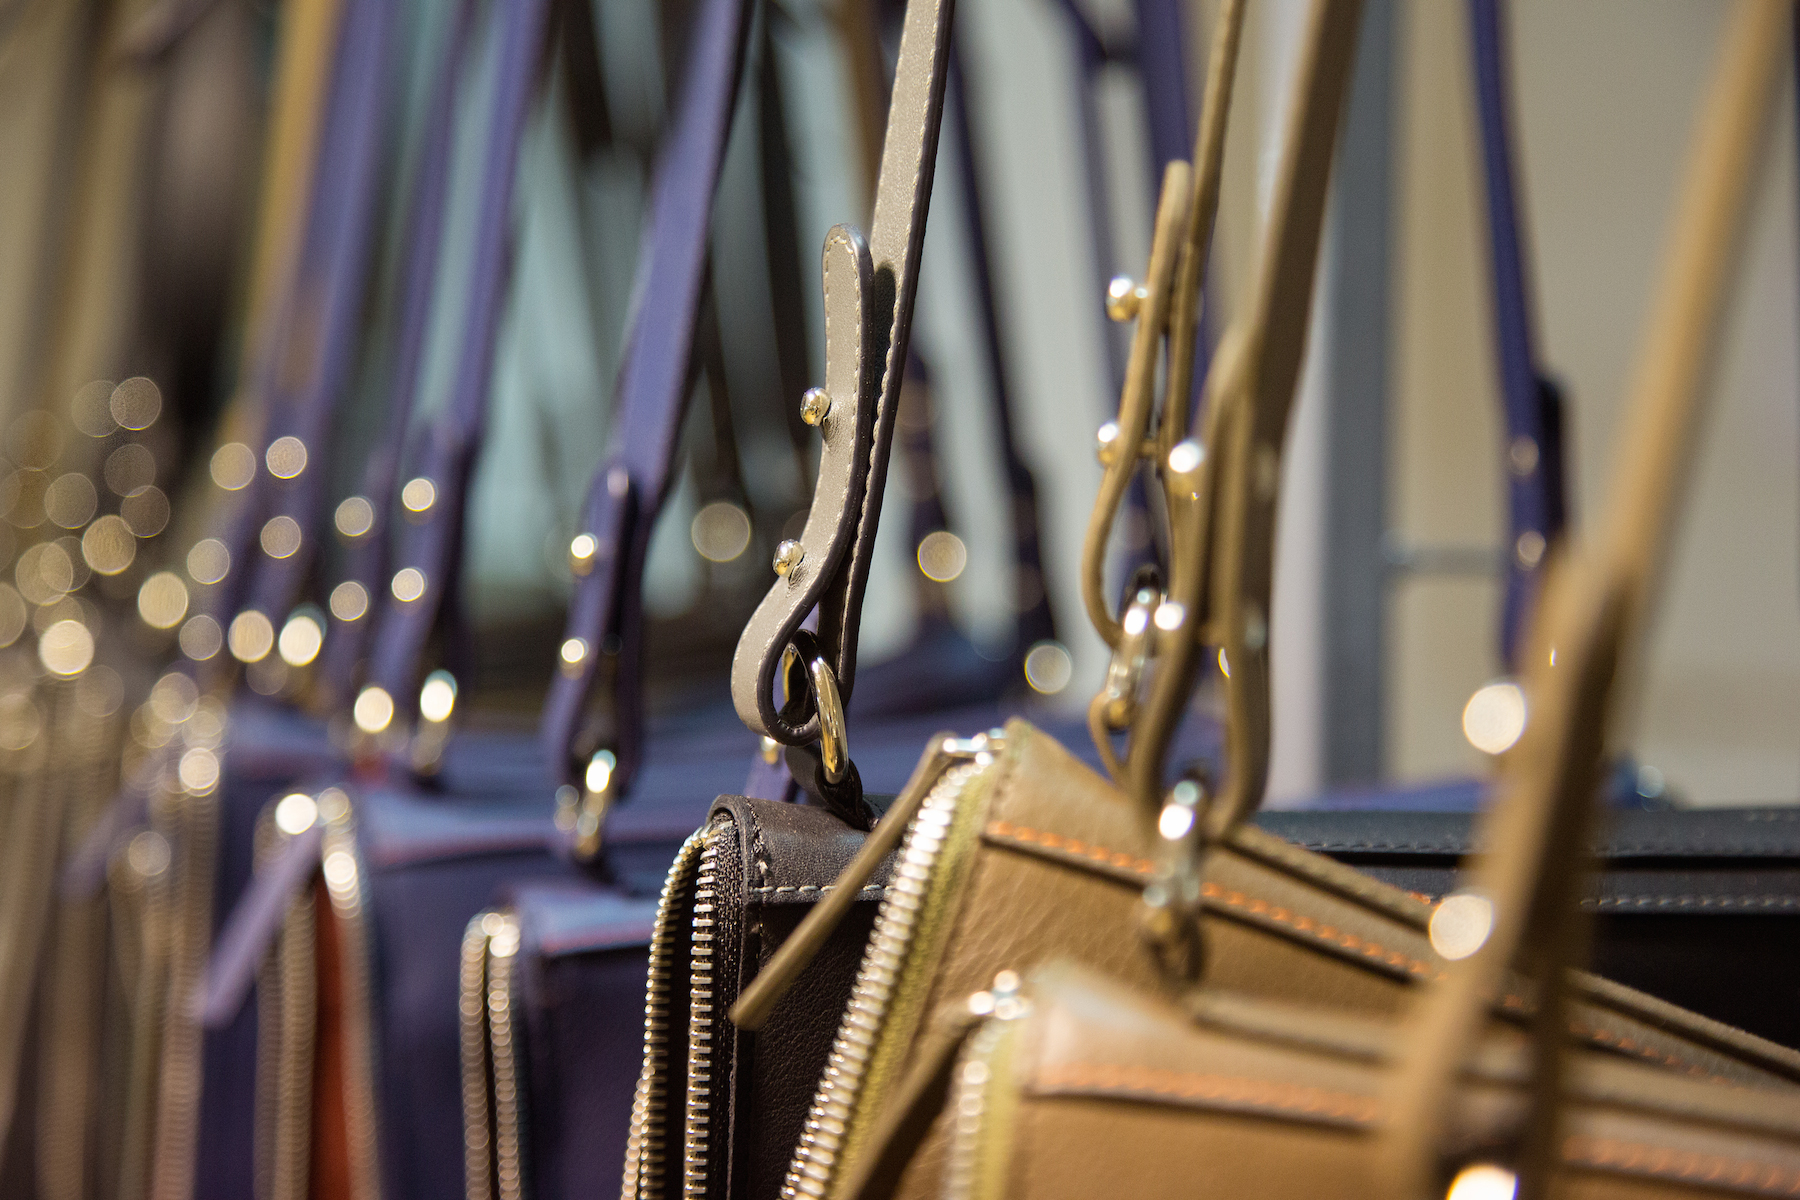 leather-handbags-manufacture